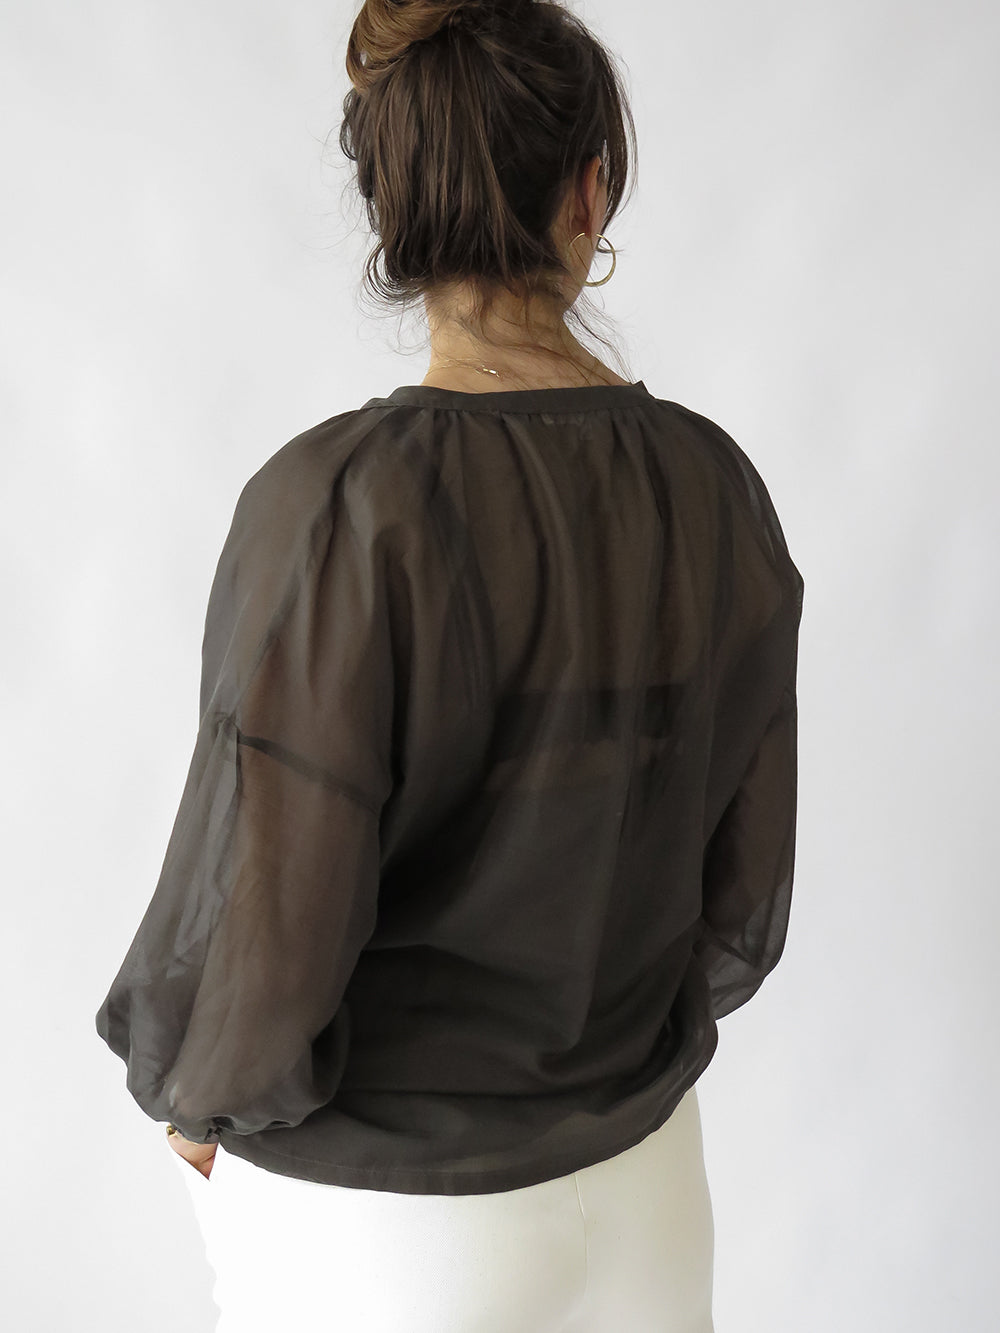 patricia blouse in army